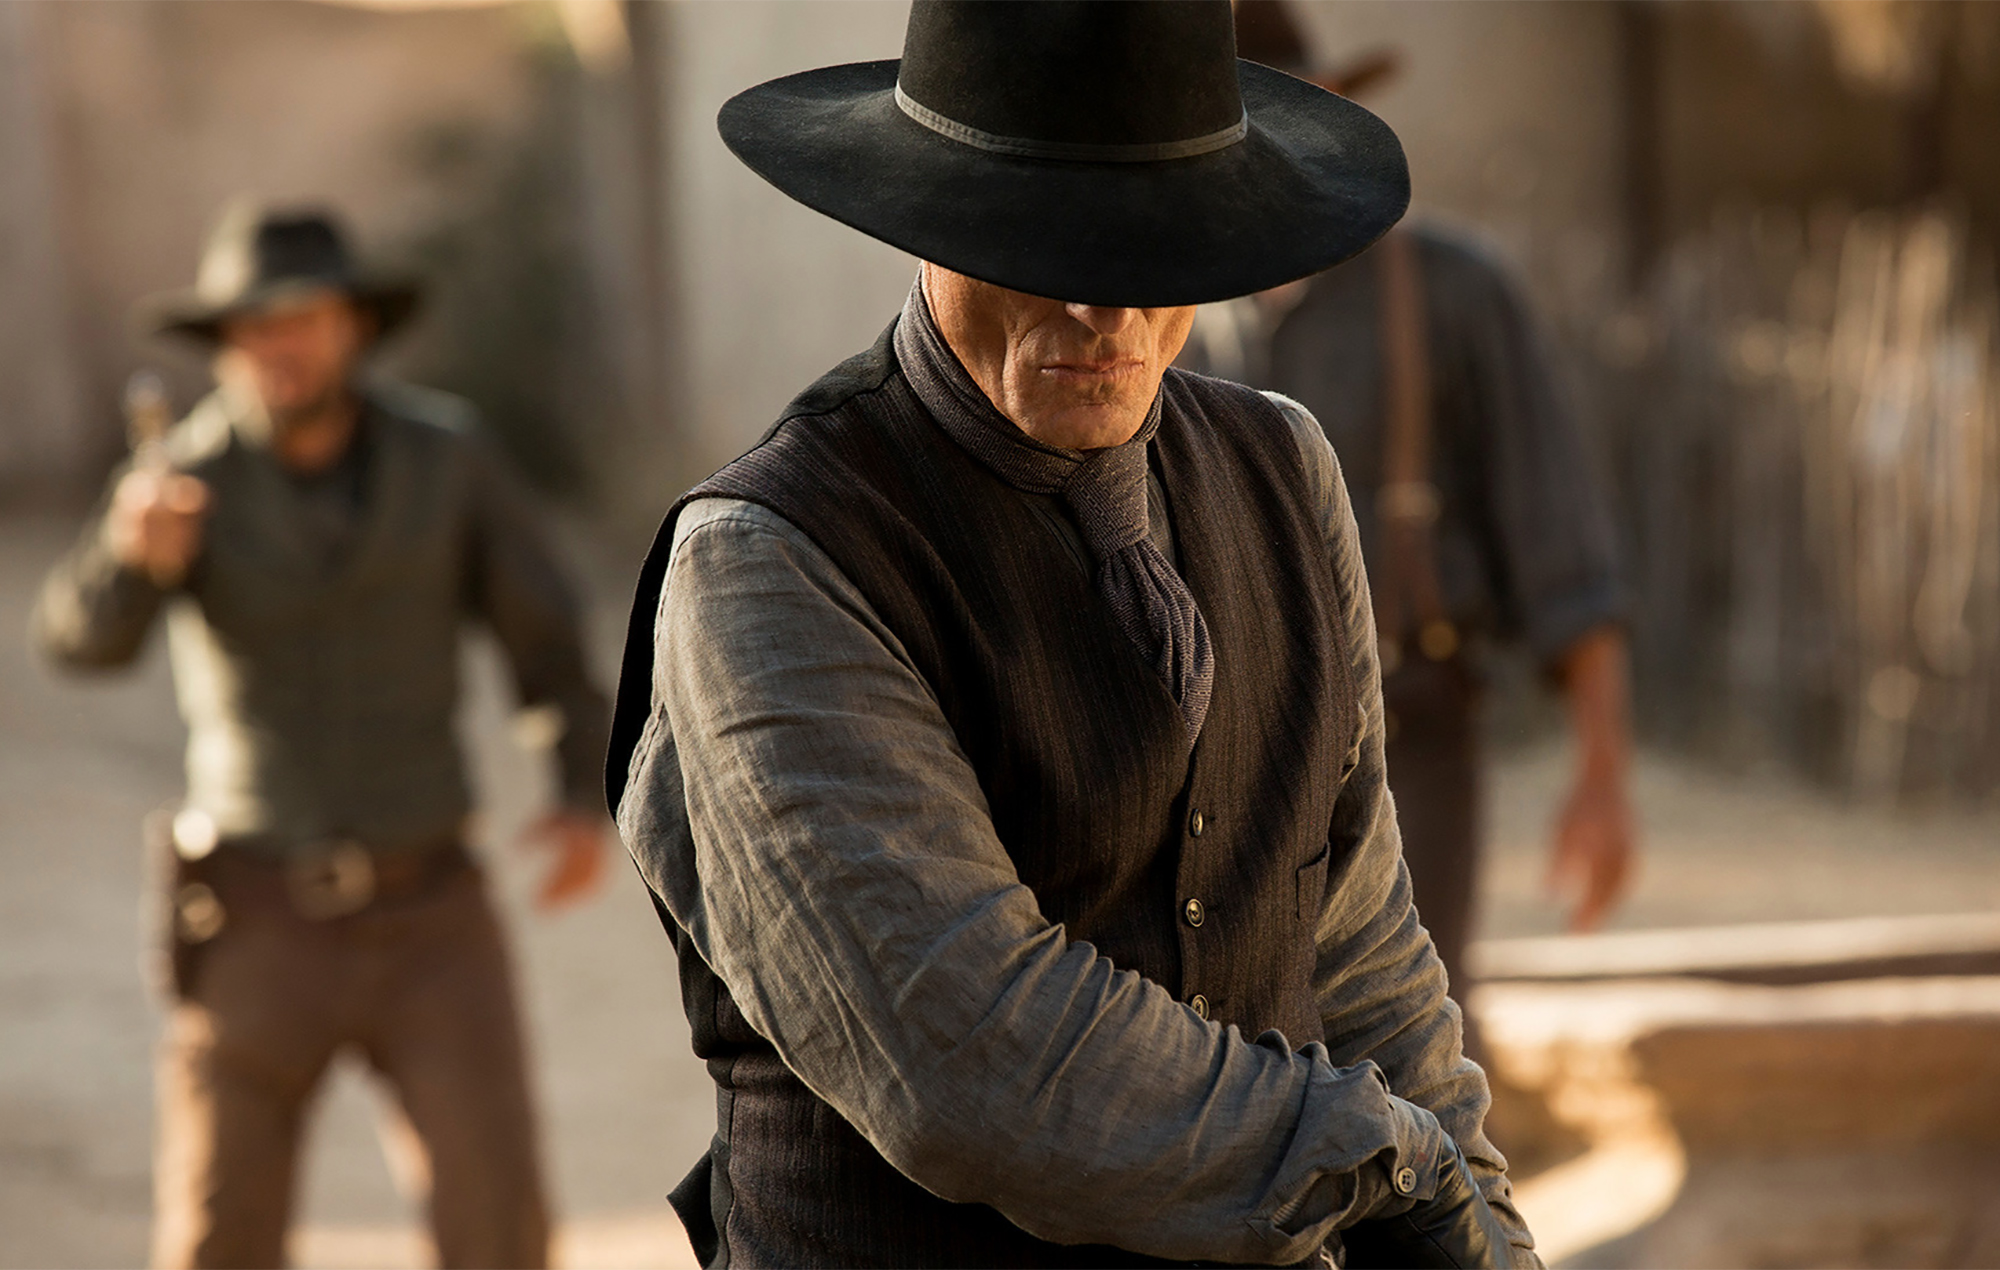 New 'Westworld' trailer teases the return of the Man in Black